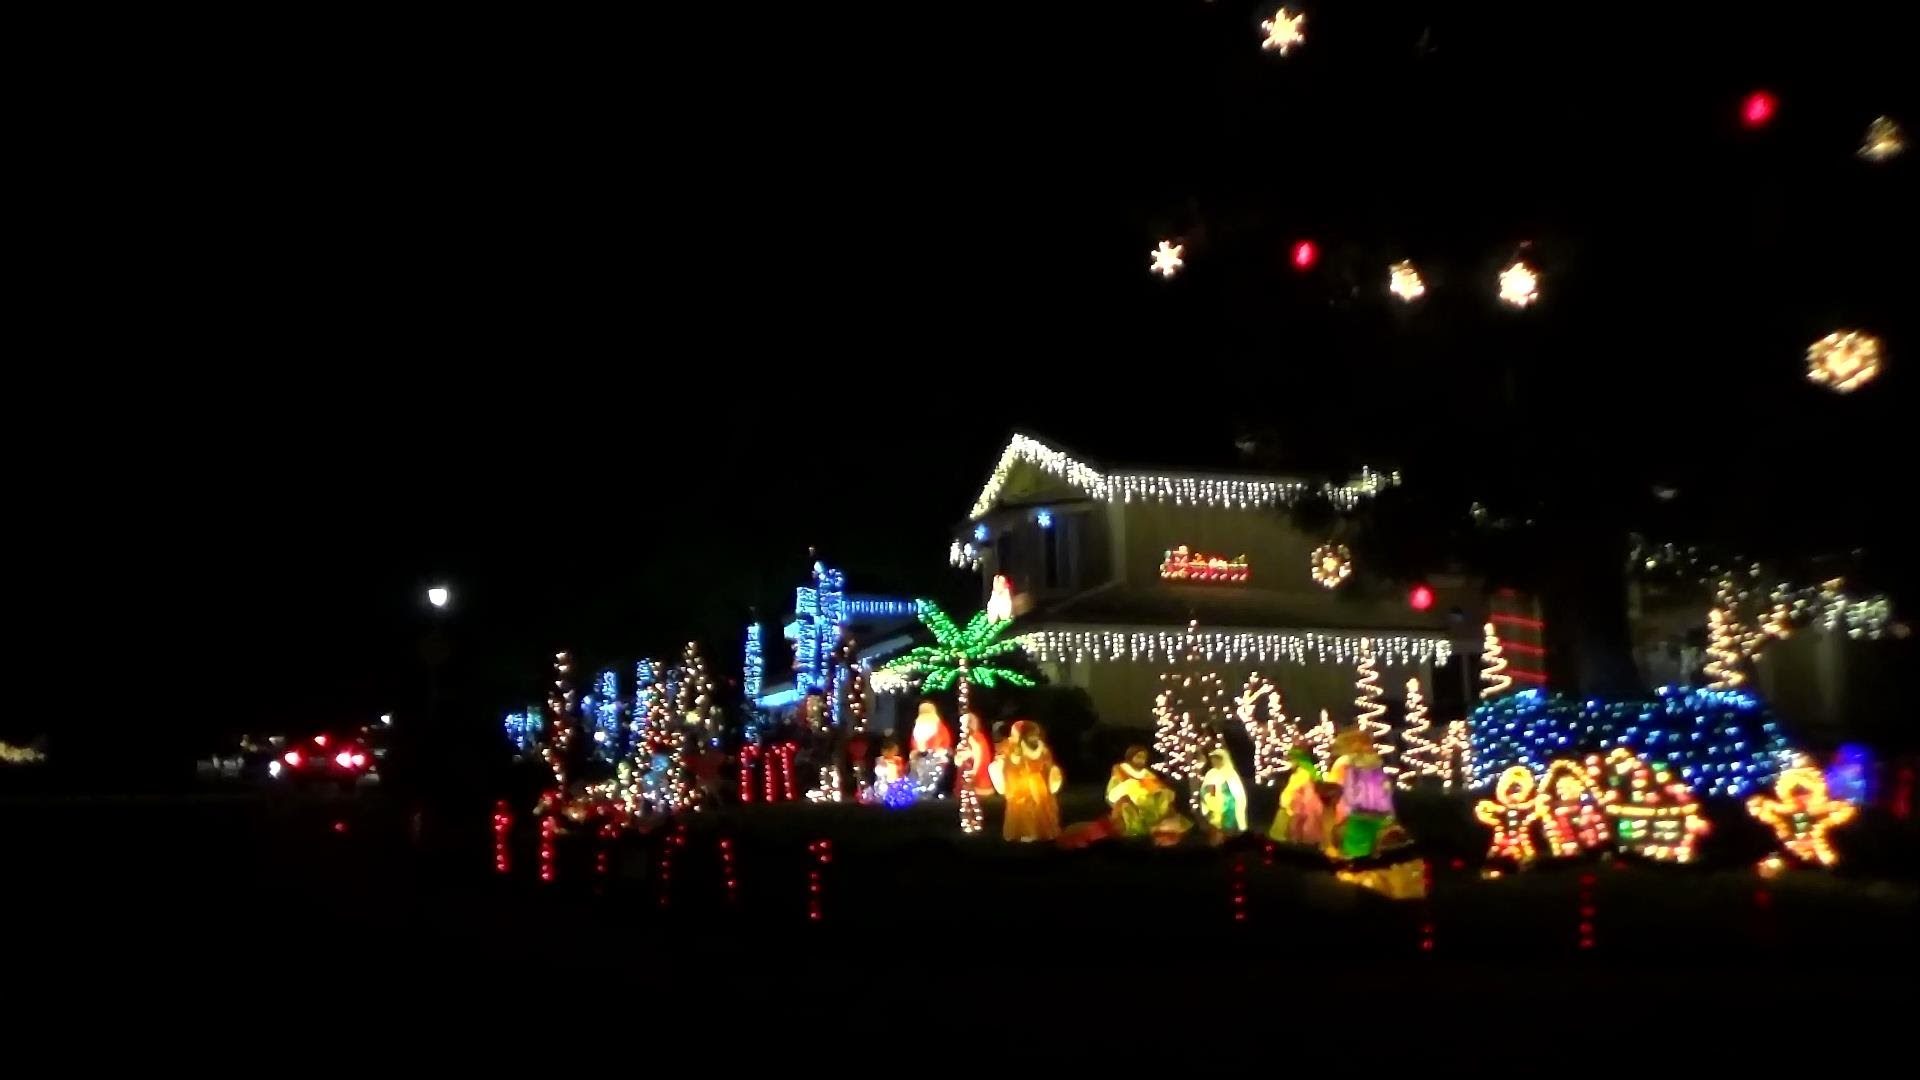 the natchitoches christmas festival committee invites residents to get in the holiday spirit and shine brightly in the 2nd annual neighborhood lighting - Natchitoches Christmas Festival